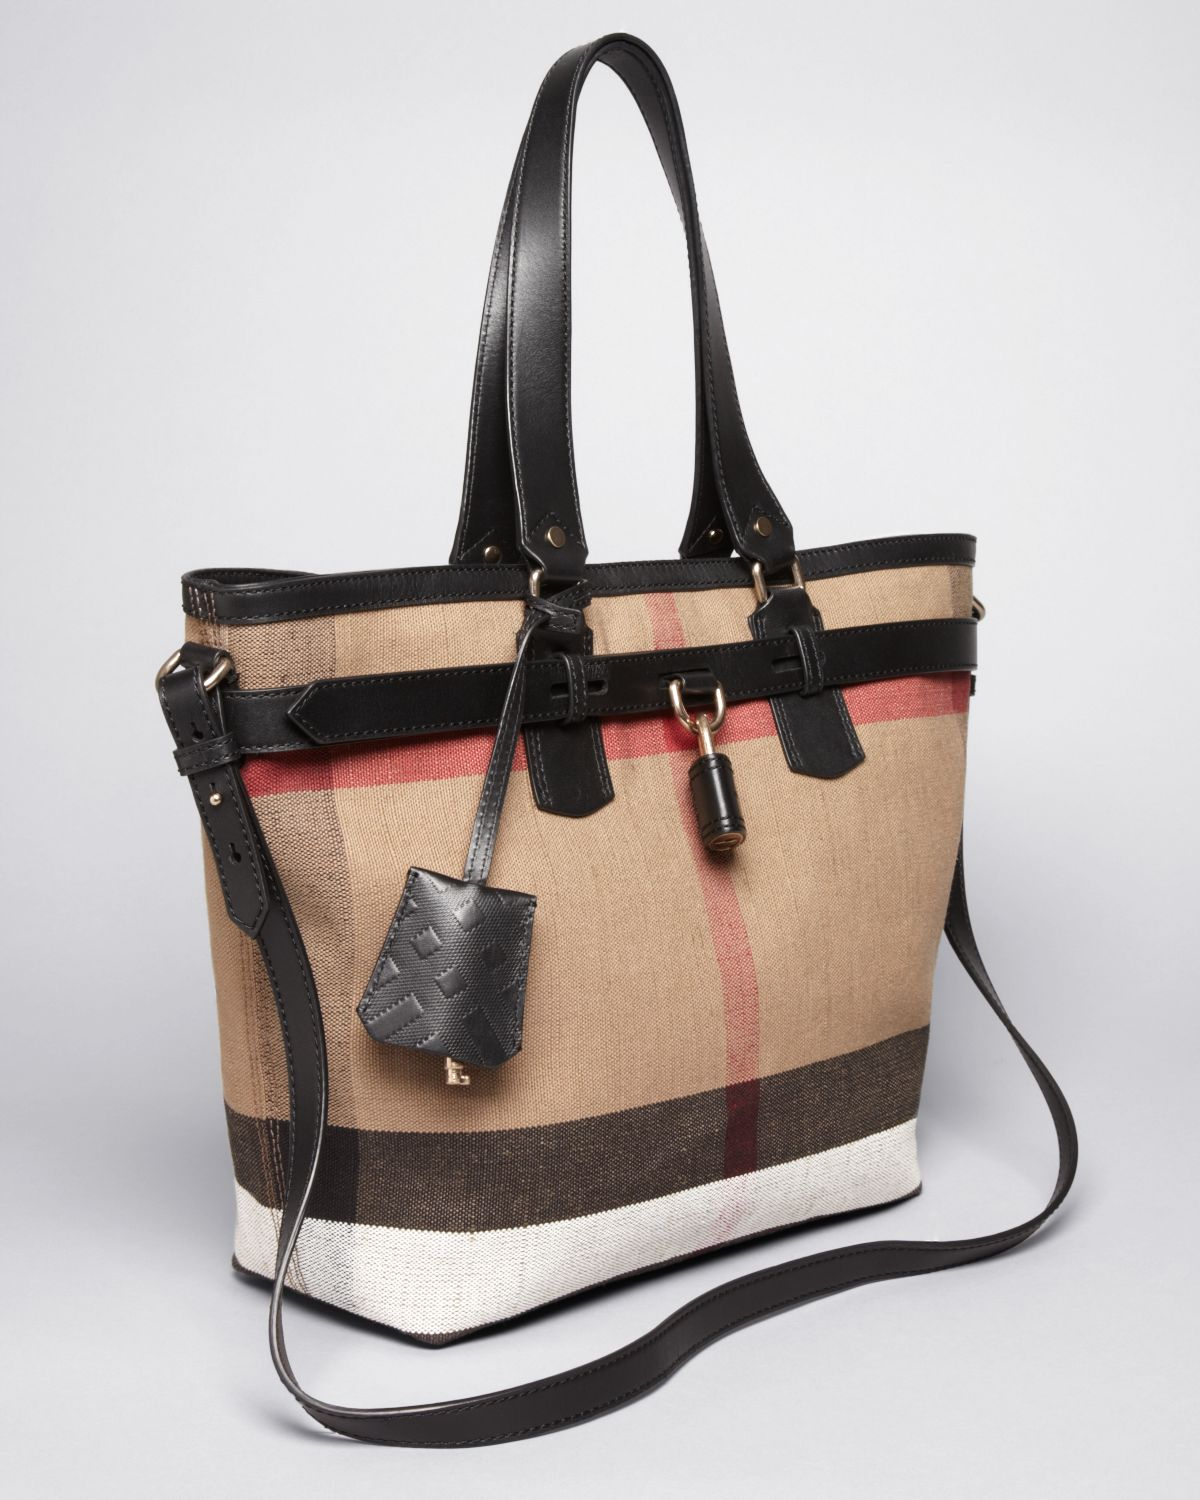 c5a7dbefda6a Lyst - Burberry Brit Tote Canvas Check Medium Traveler in Brown